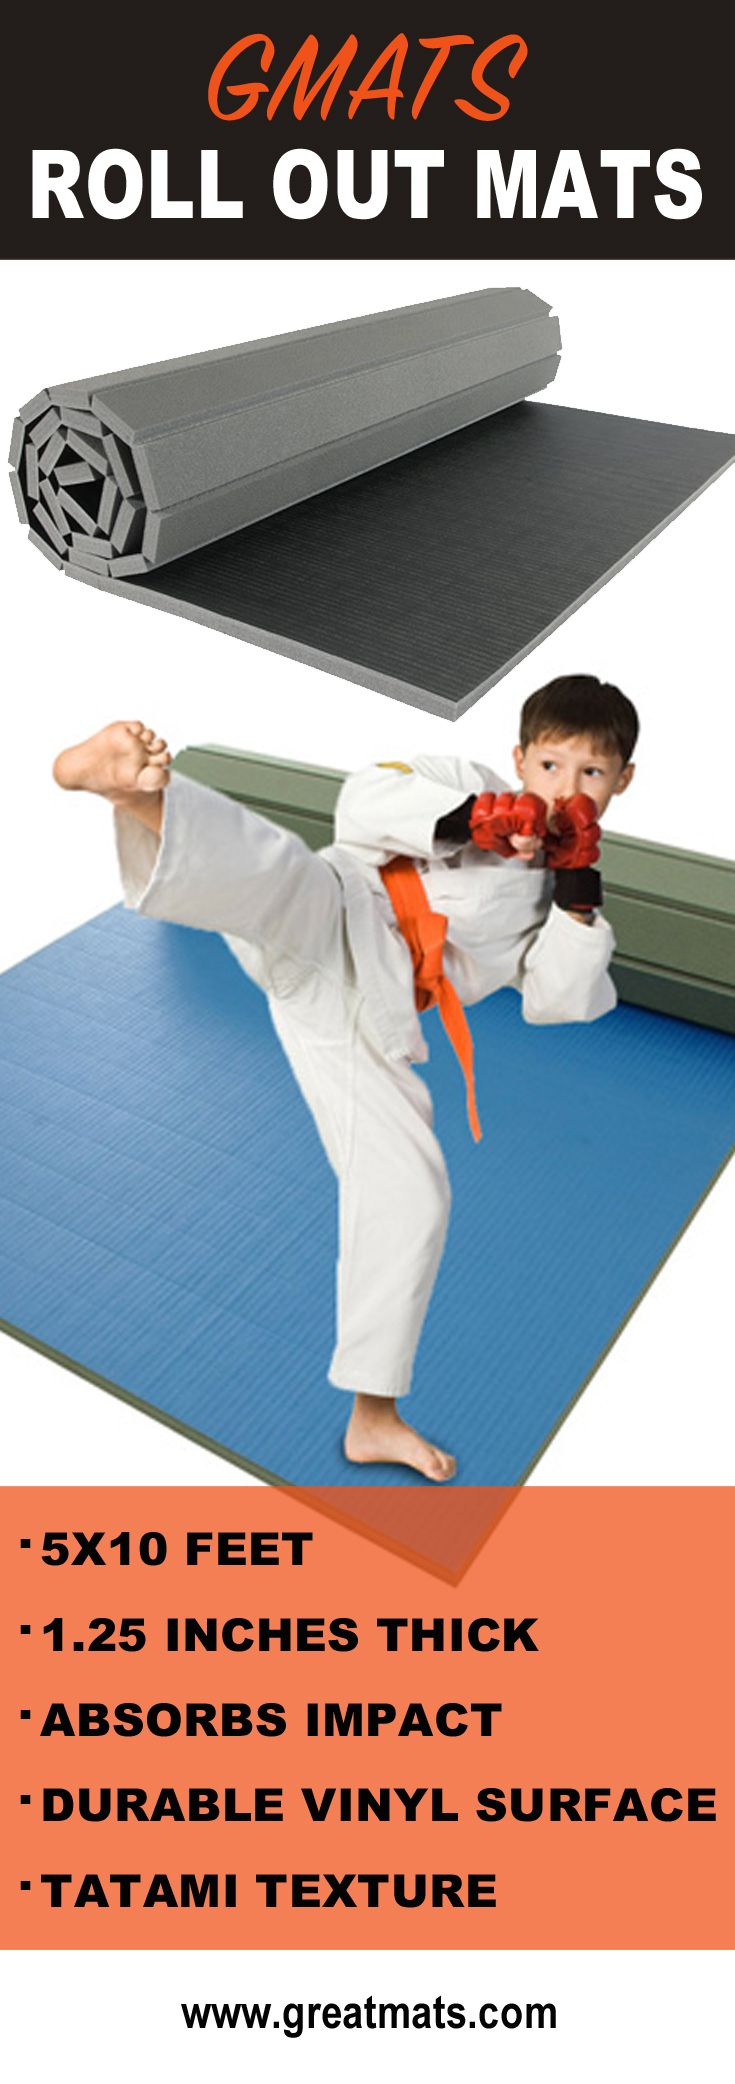 Mats roll out mats are some of the best home exercise gym floor mats available. These workout mats are great for wrestling, martial arts and general exercises.